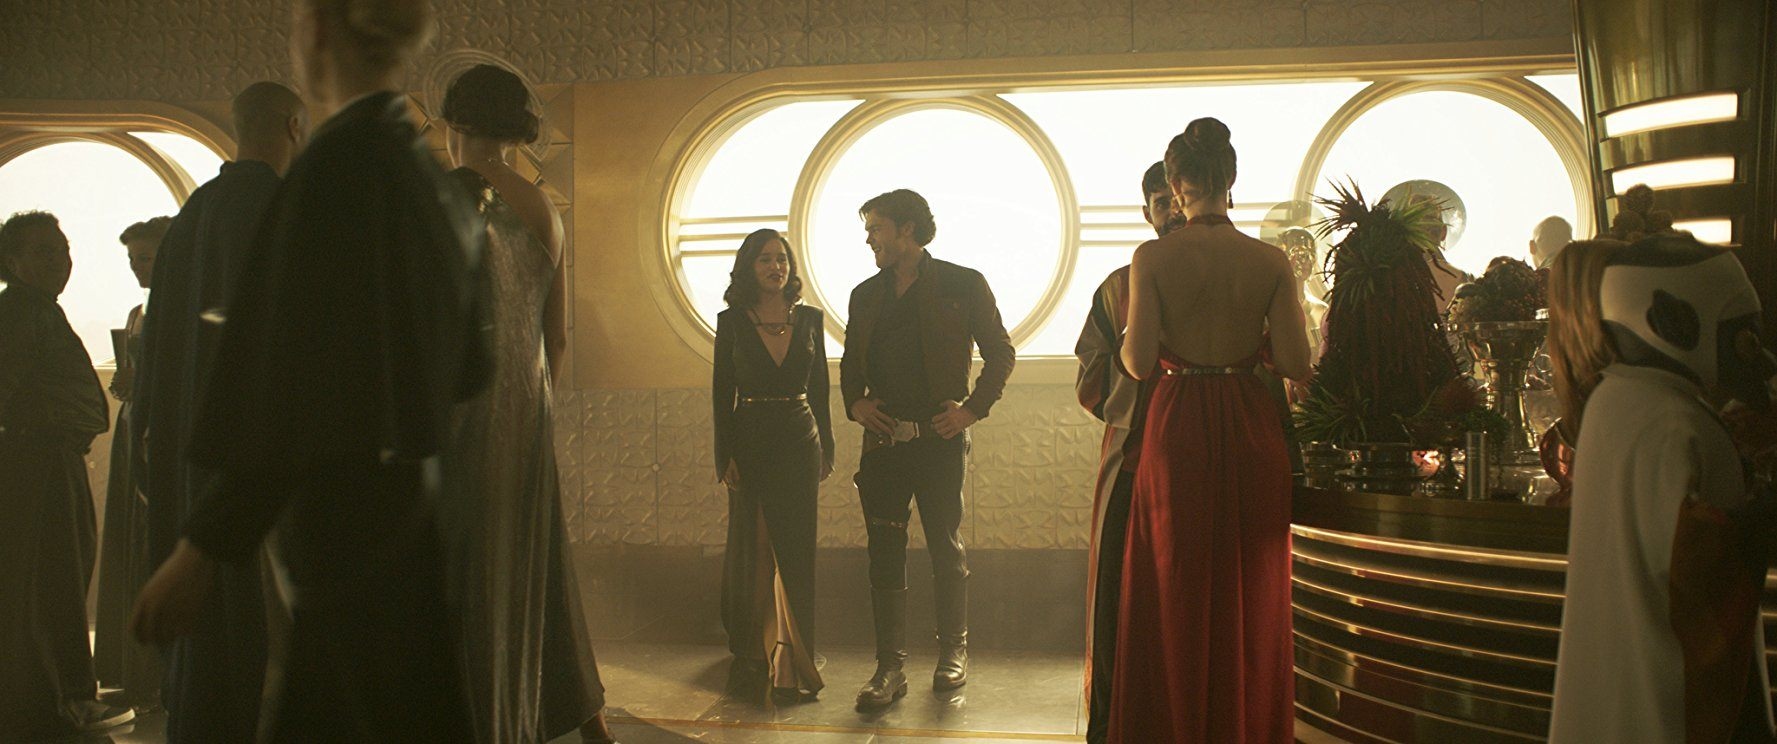 Solo: A Star Wars Story' Fixed the Franchise's Biggest Mistake, and